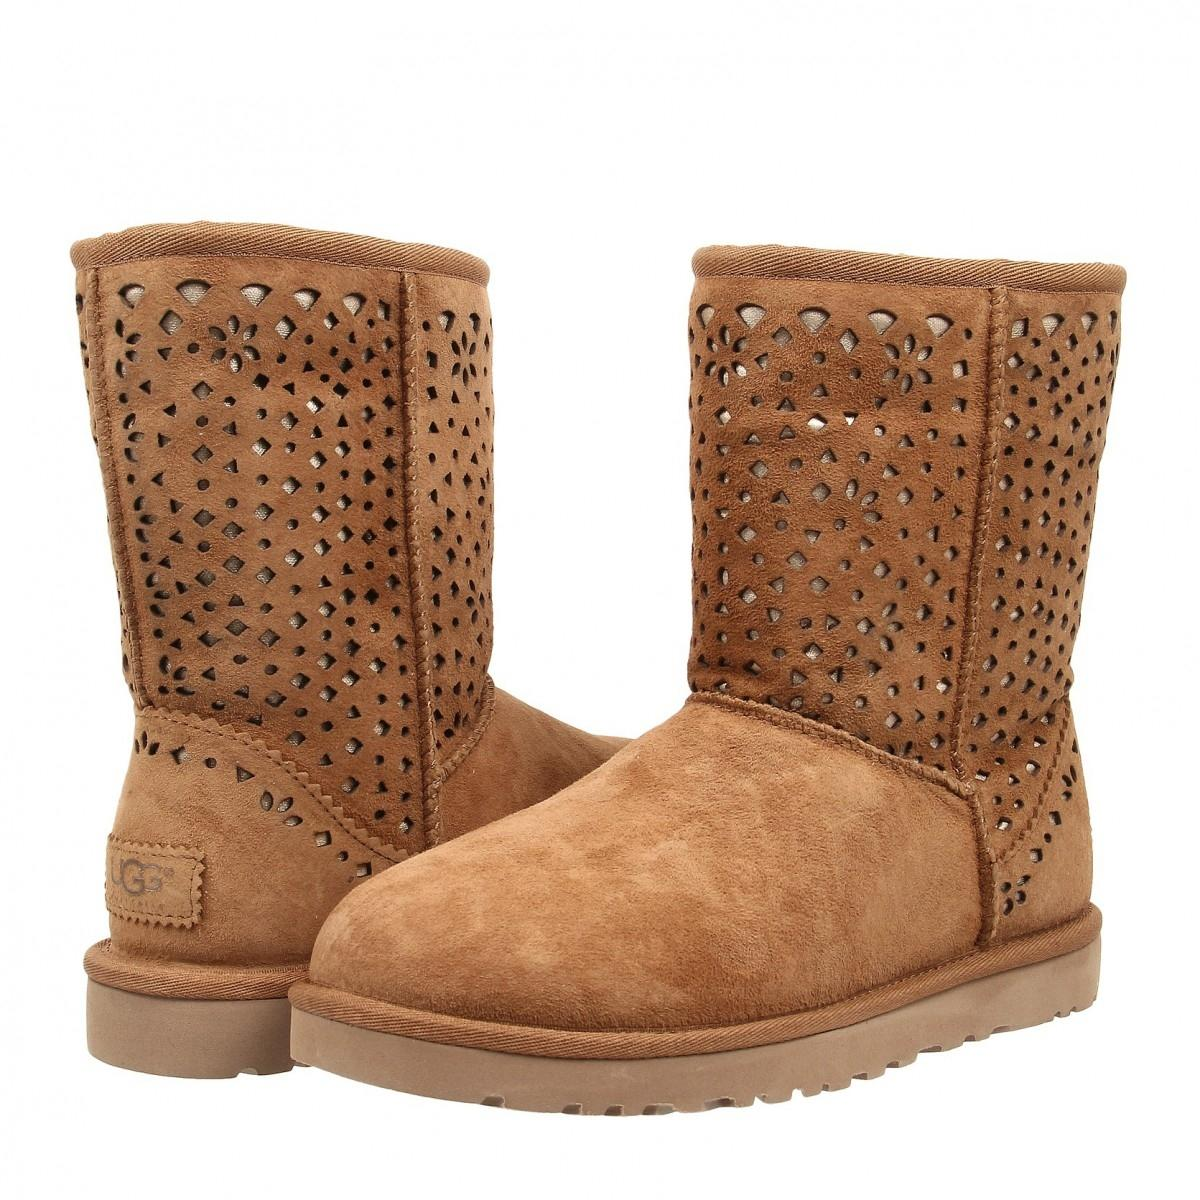 Ugg Boots CLEARANCE SALE by Jumbo ugg boots Australia - We sell genuine Australian ugg boots for affordable price - Check out our massive Ugg Boots Sale Select your shipping country We may not be able to ship some of the products on this web site to your country.